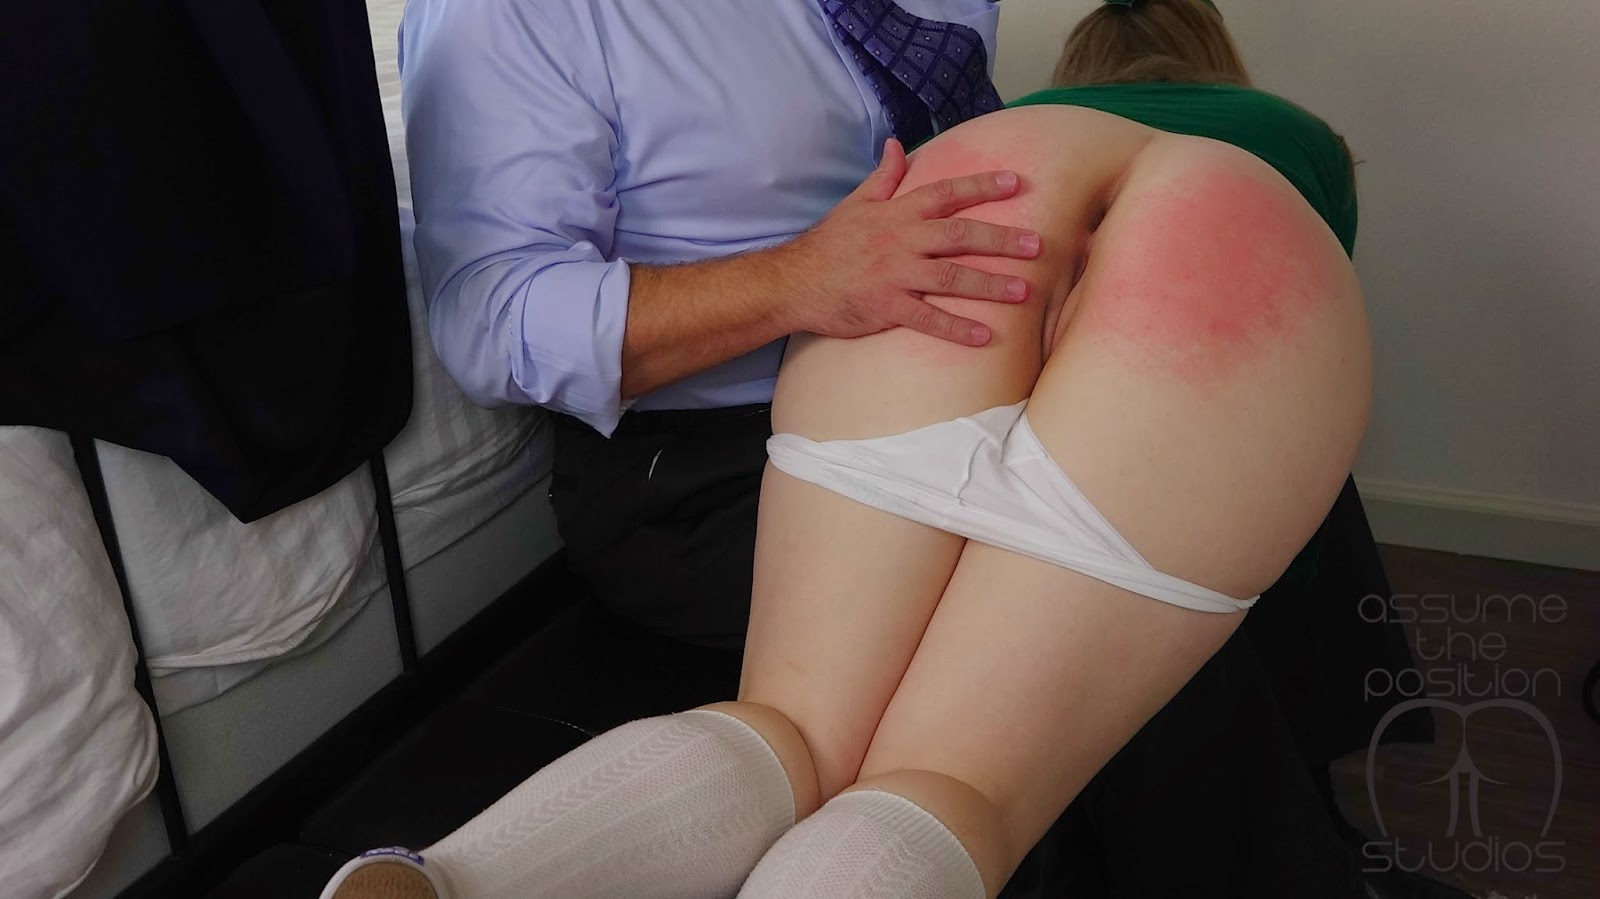 bare bottom giving spankings woman woman jpg 853x1280